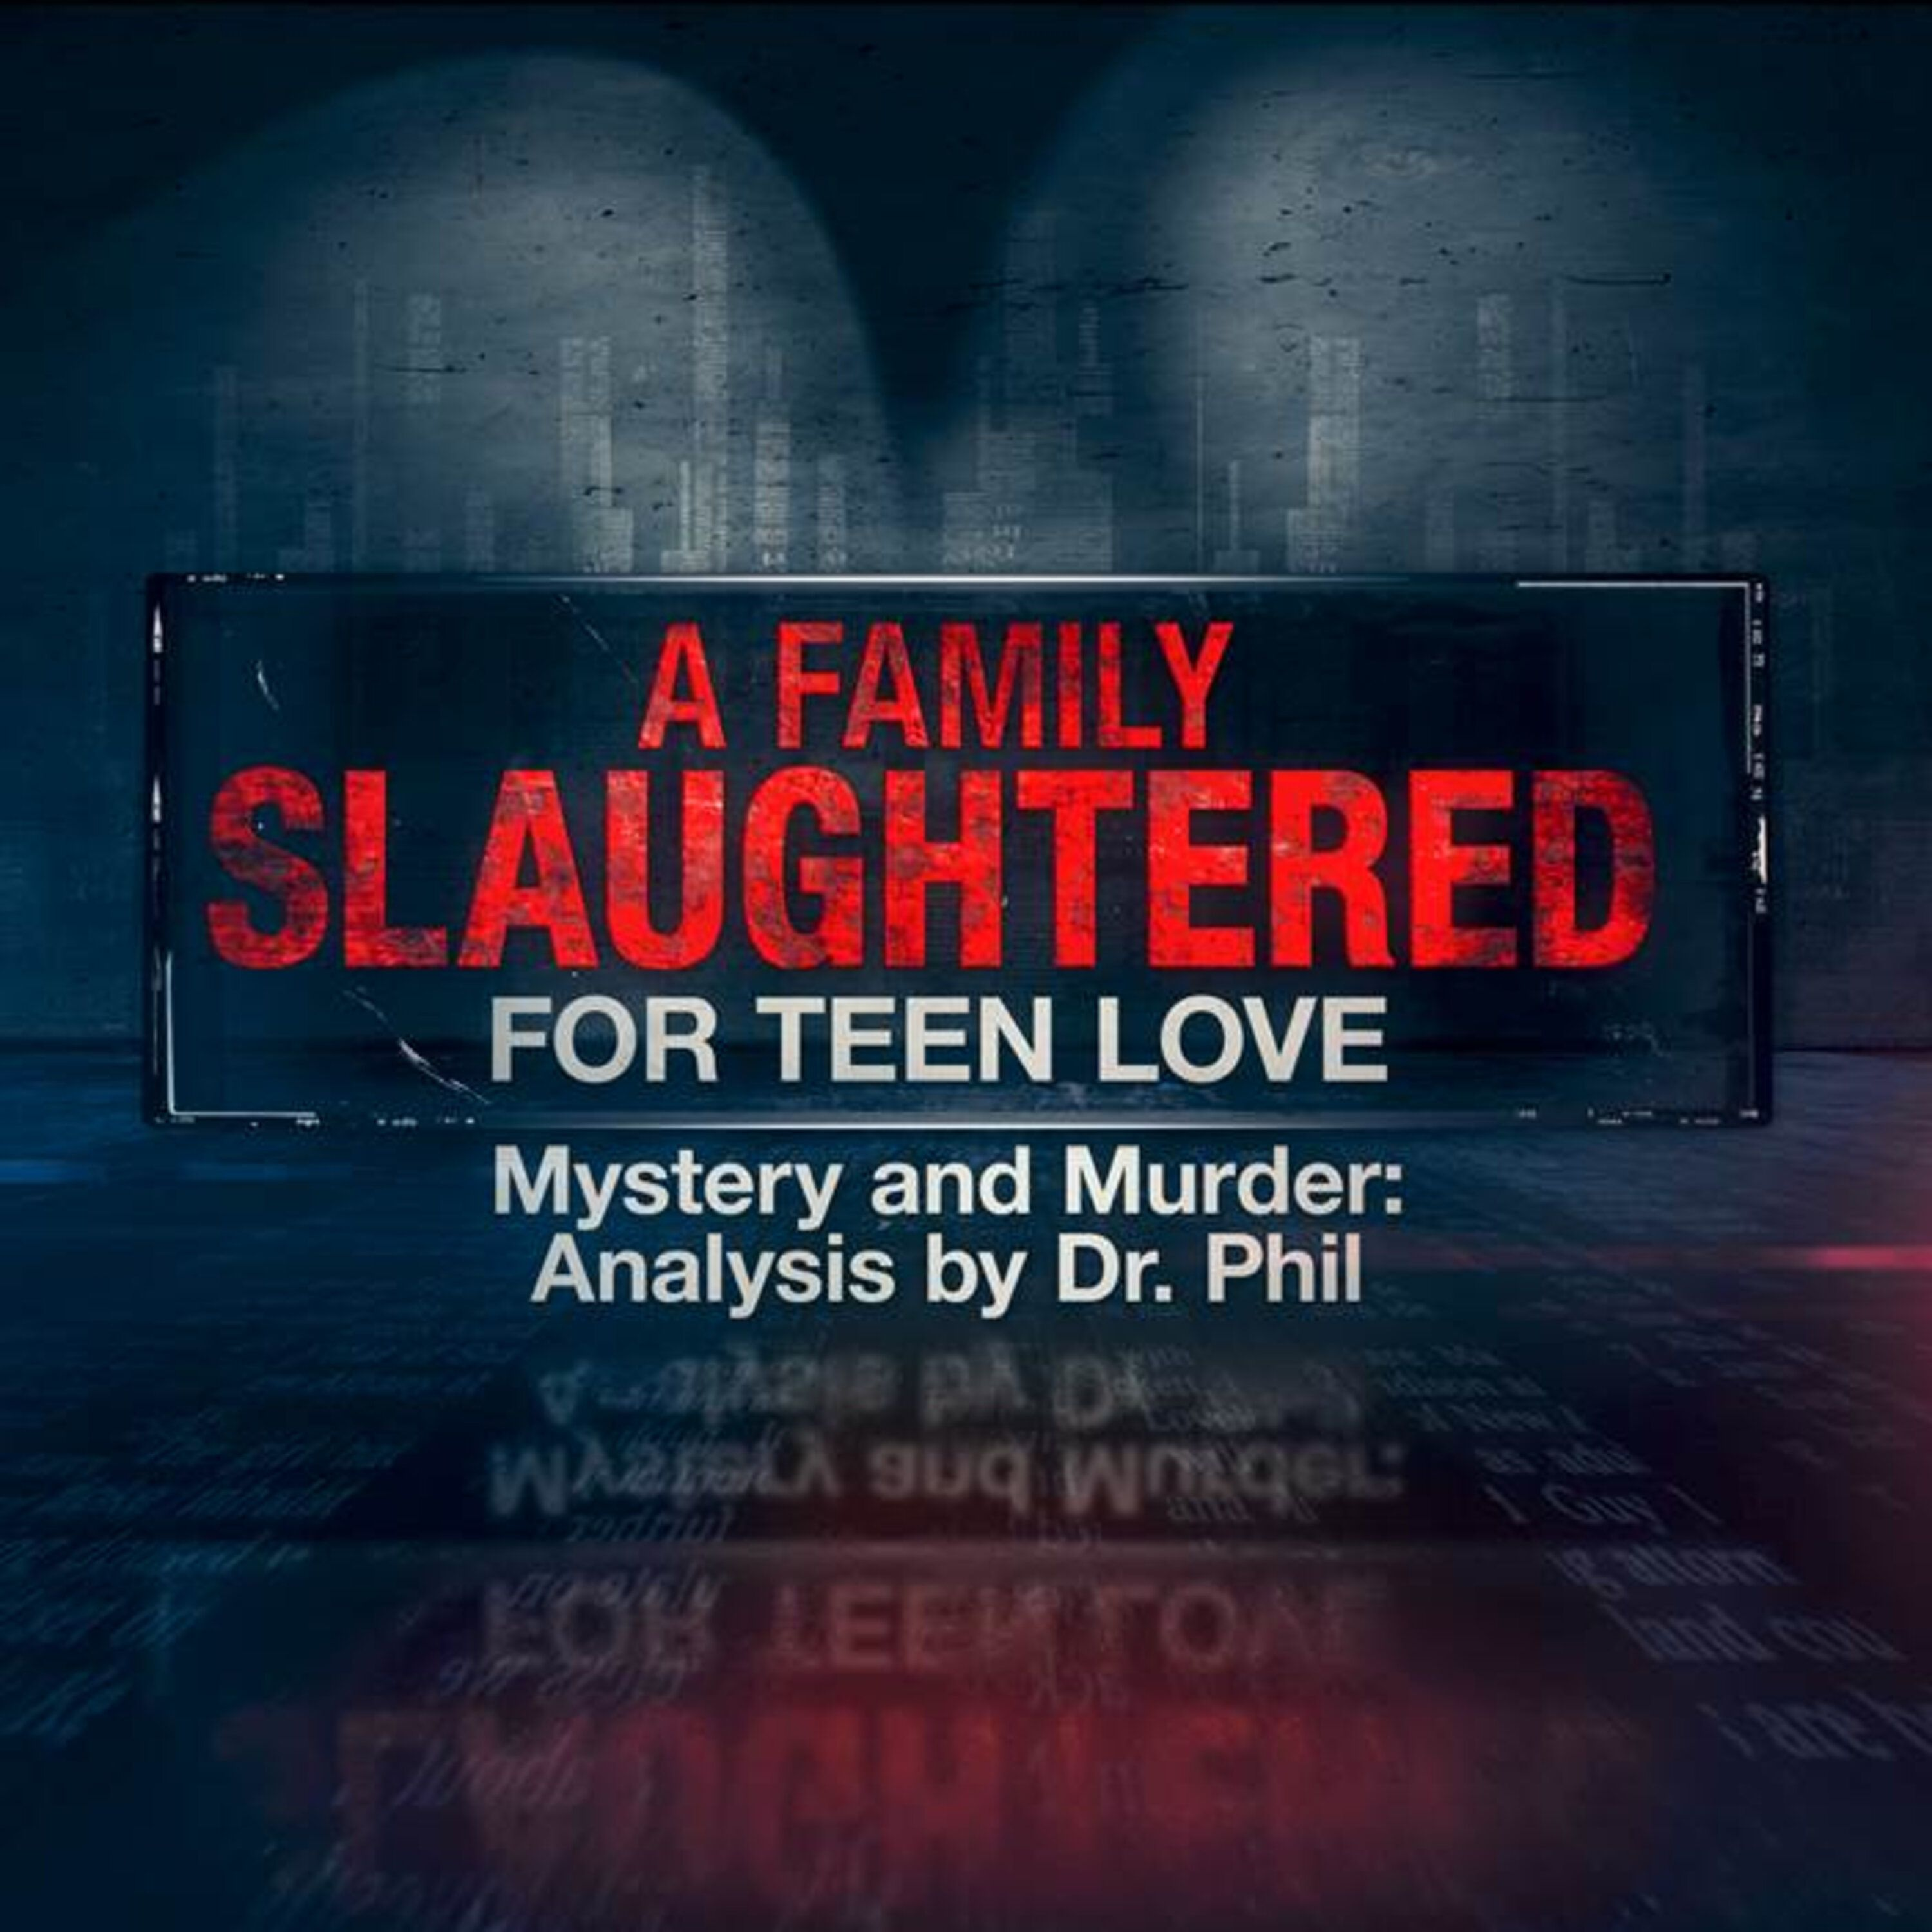 S6e3 A Family Slaughtered For Teen Love Mystery And Murder Analysis By Dr Phil Little Girl Lost The Case Of Erica Parsons Mystery And Murder Analysis By Dr Phil Podcast Podtail Dr phil has a target on his head now. podtail